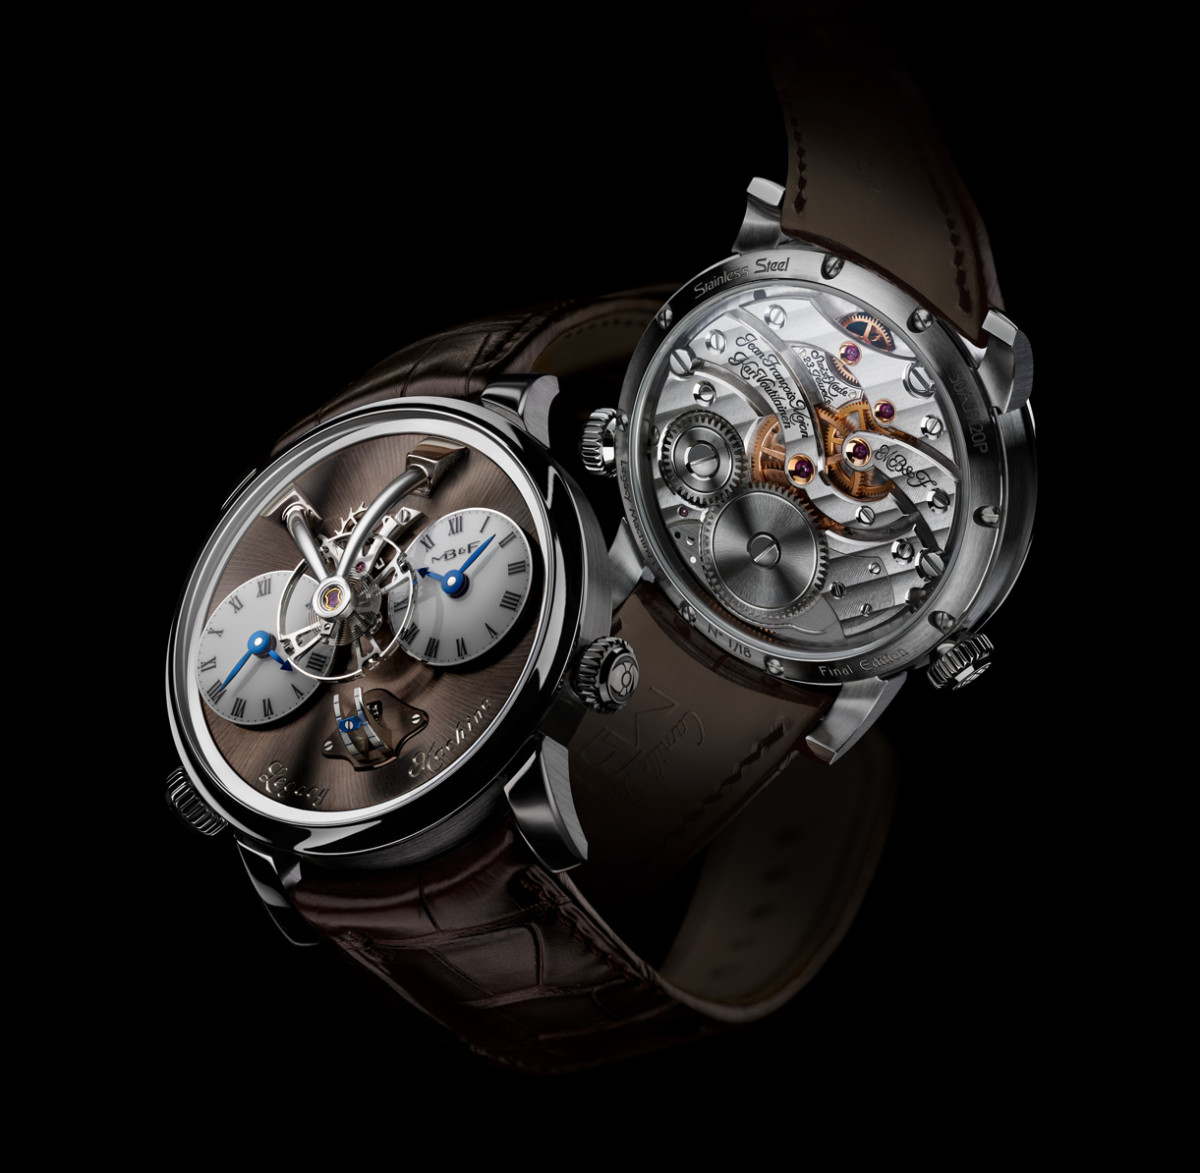 MB&F LM1 Final Edition